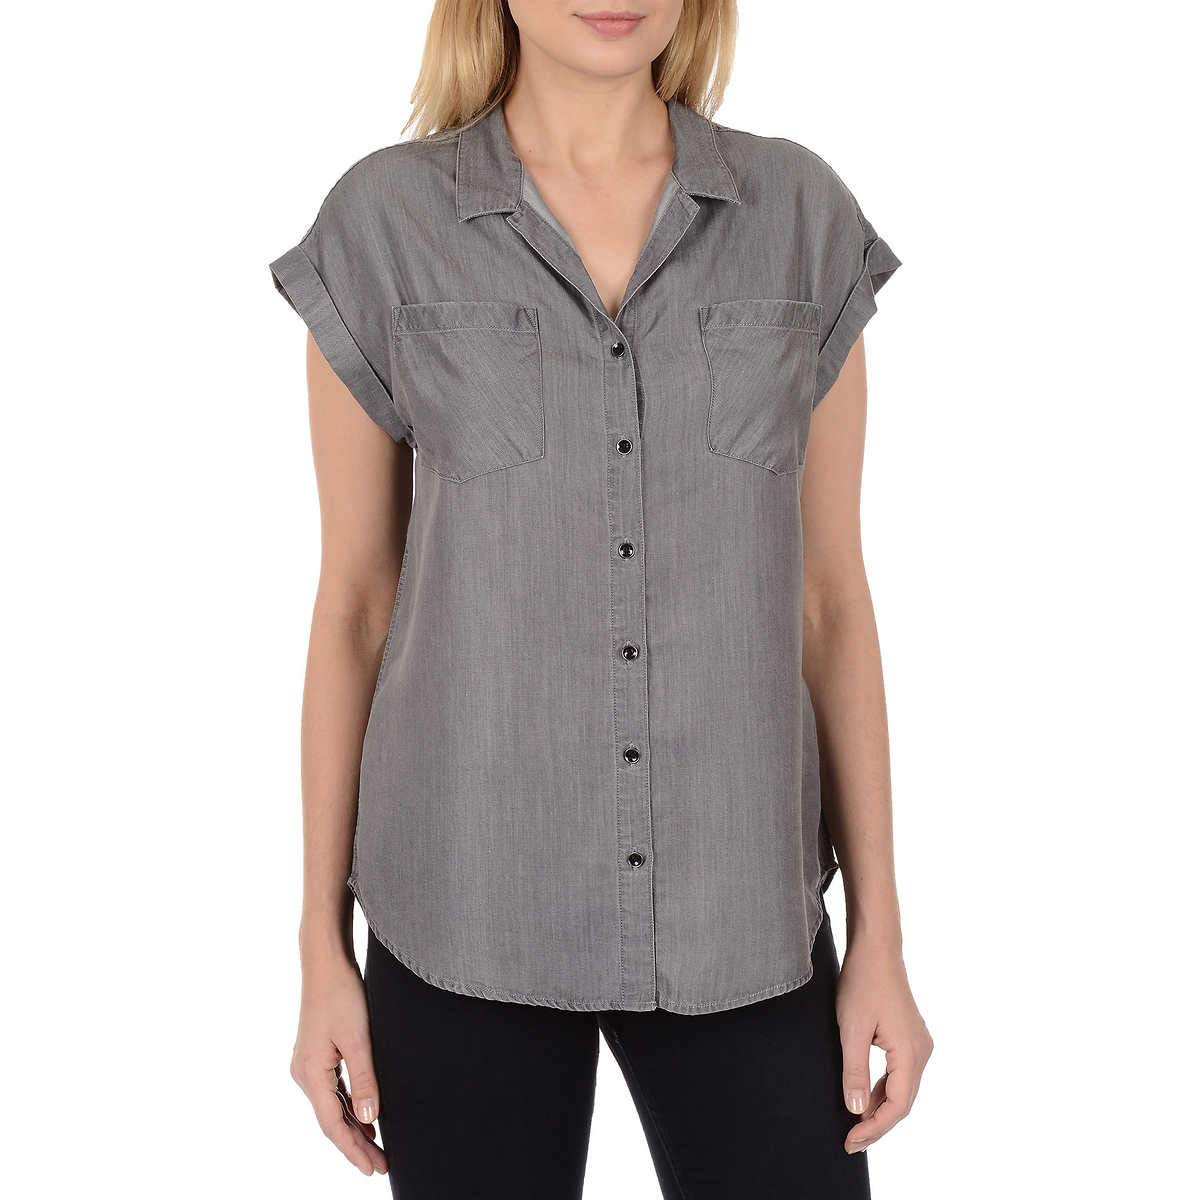 Jachs Girlfriend Women's Short Sleeve Tencel Blouse (Grey, Medium)